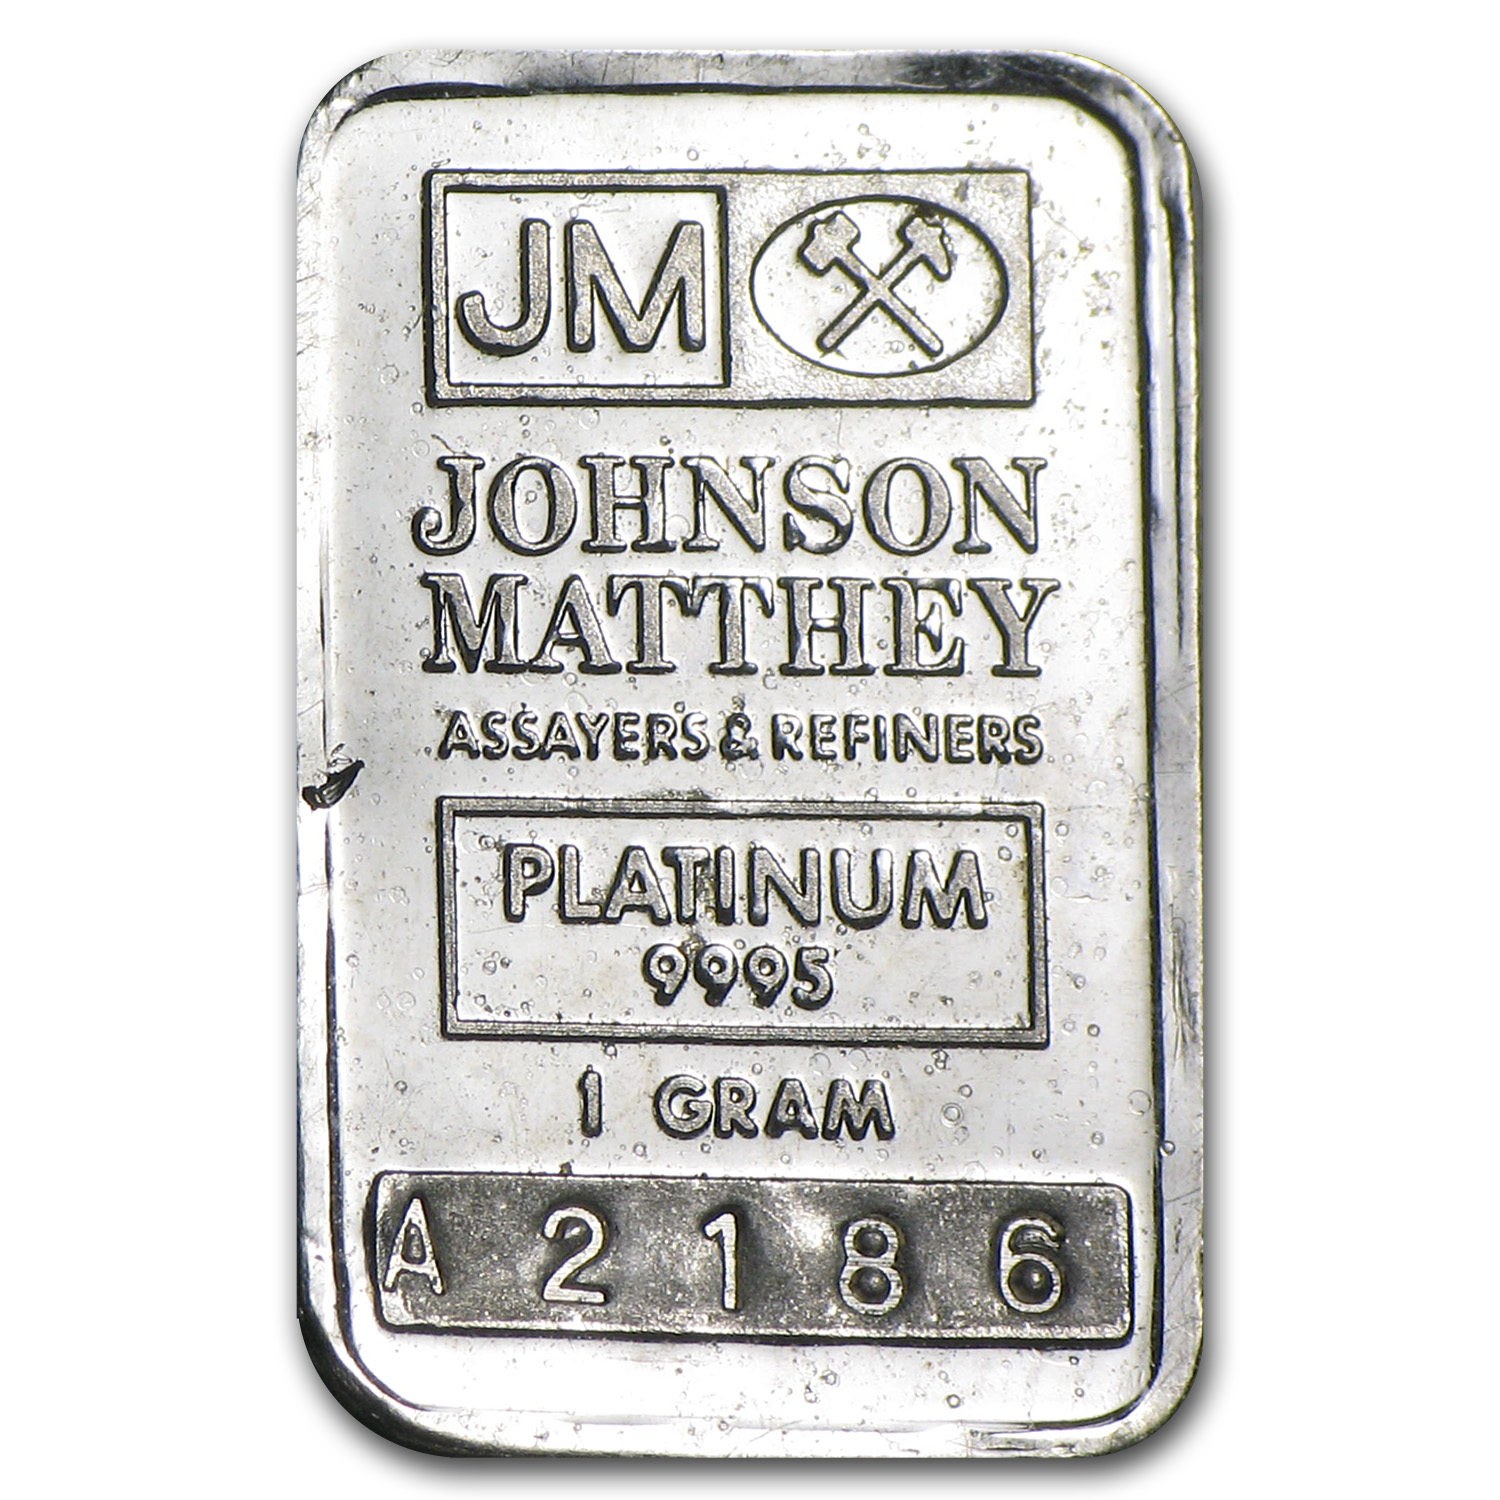 1 gram Platinum Bar - Johnson Matthey (.9995 Fine)